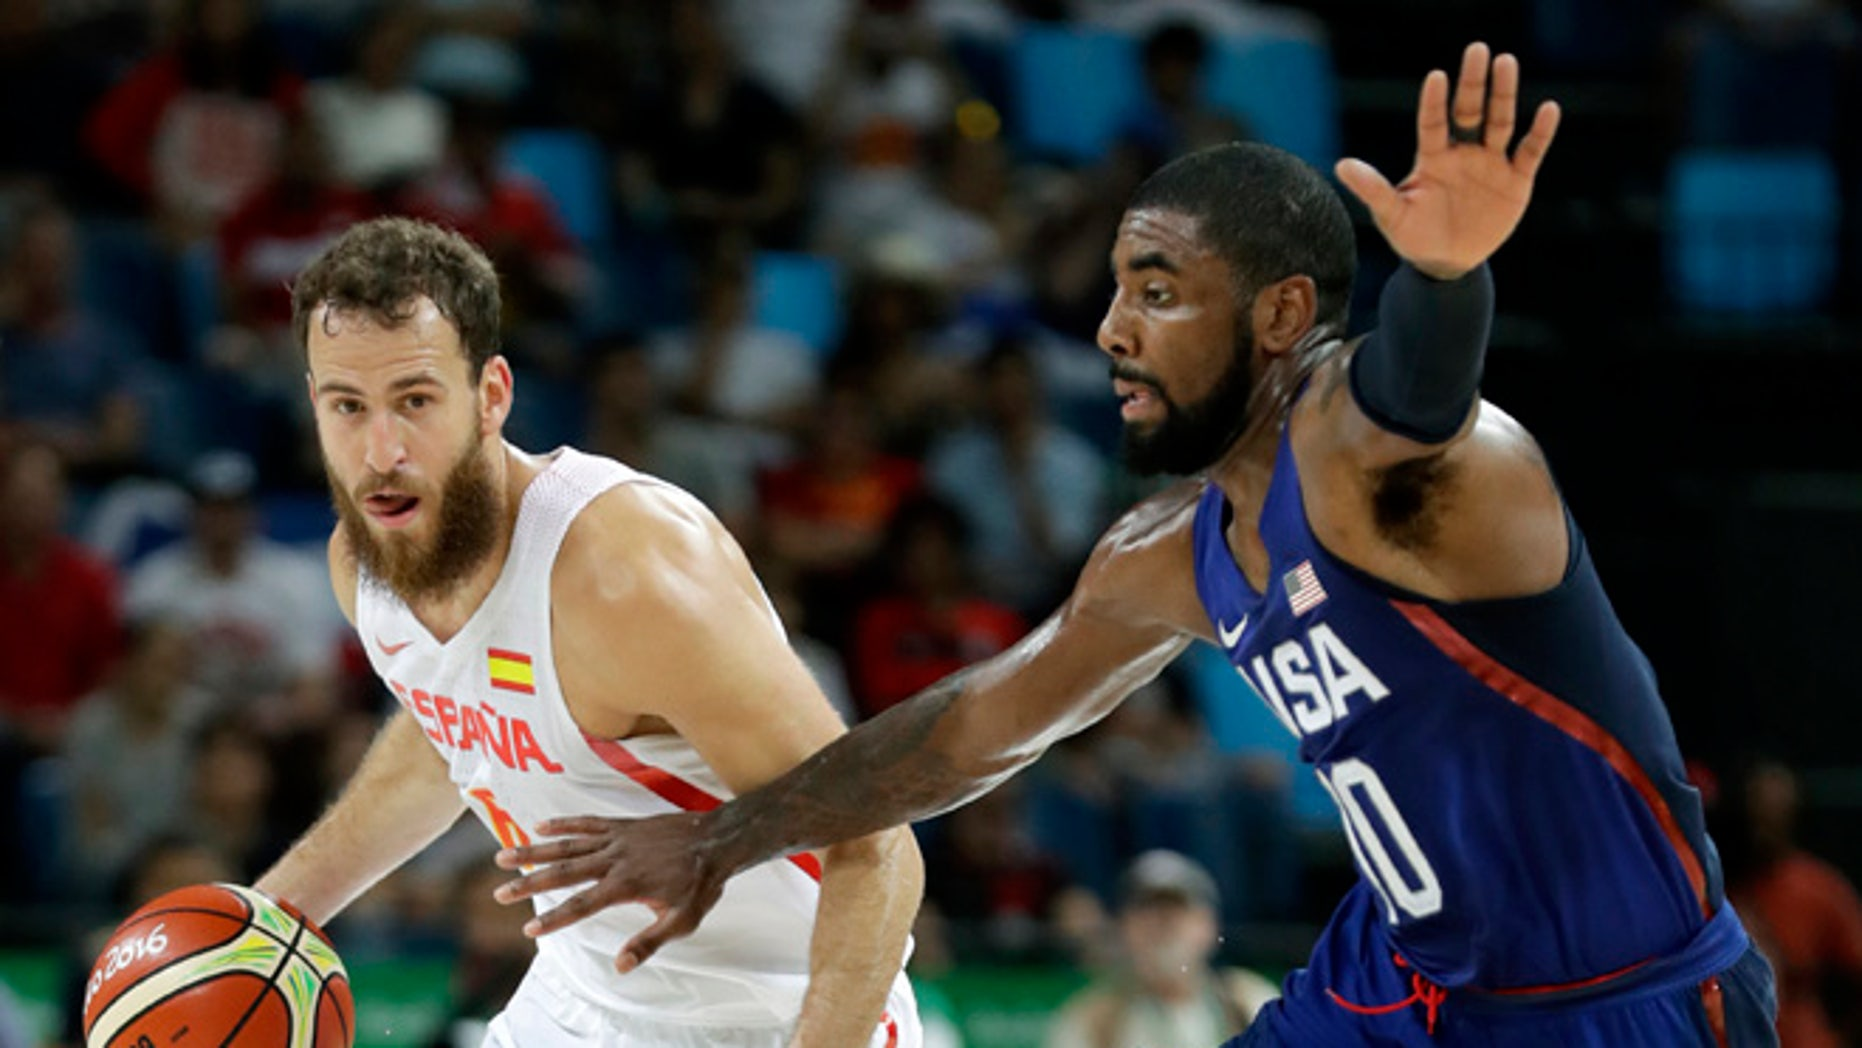 Spain's Sergio Rodriguez, left, drives up court past United States' Kyrie Irving, right, during a semifinal round basketball game at the 2016 Summer Olympics in Rio de Janeiro, Brazil, Friday, Aug. 19, 2016. (AP Photo/Charlie Neibergall)